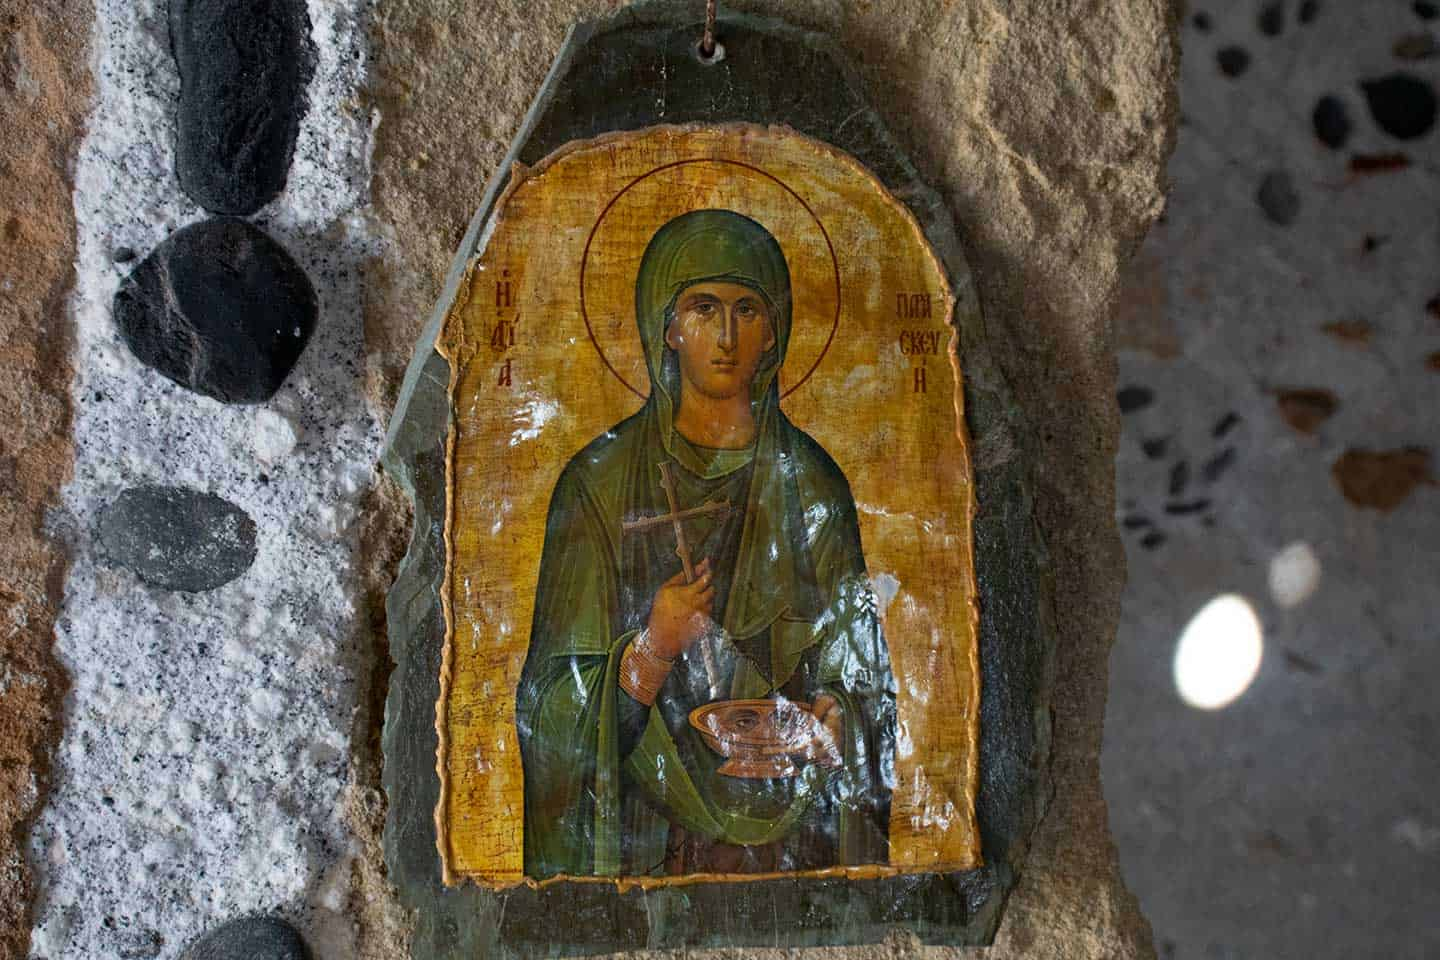 Image of an icon in the Byzantine church of Agios Pavlos Crete